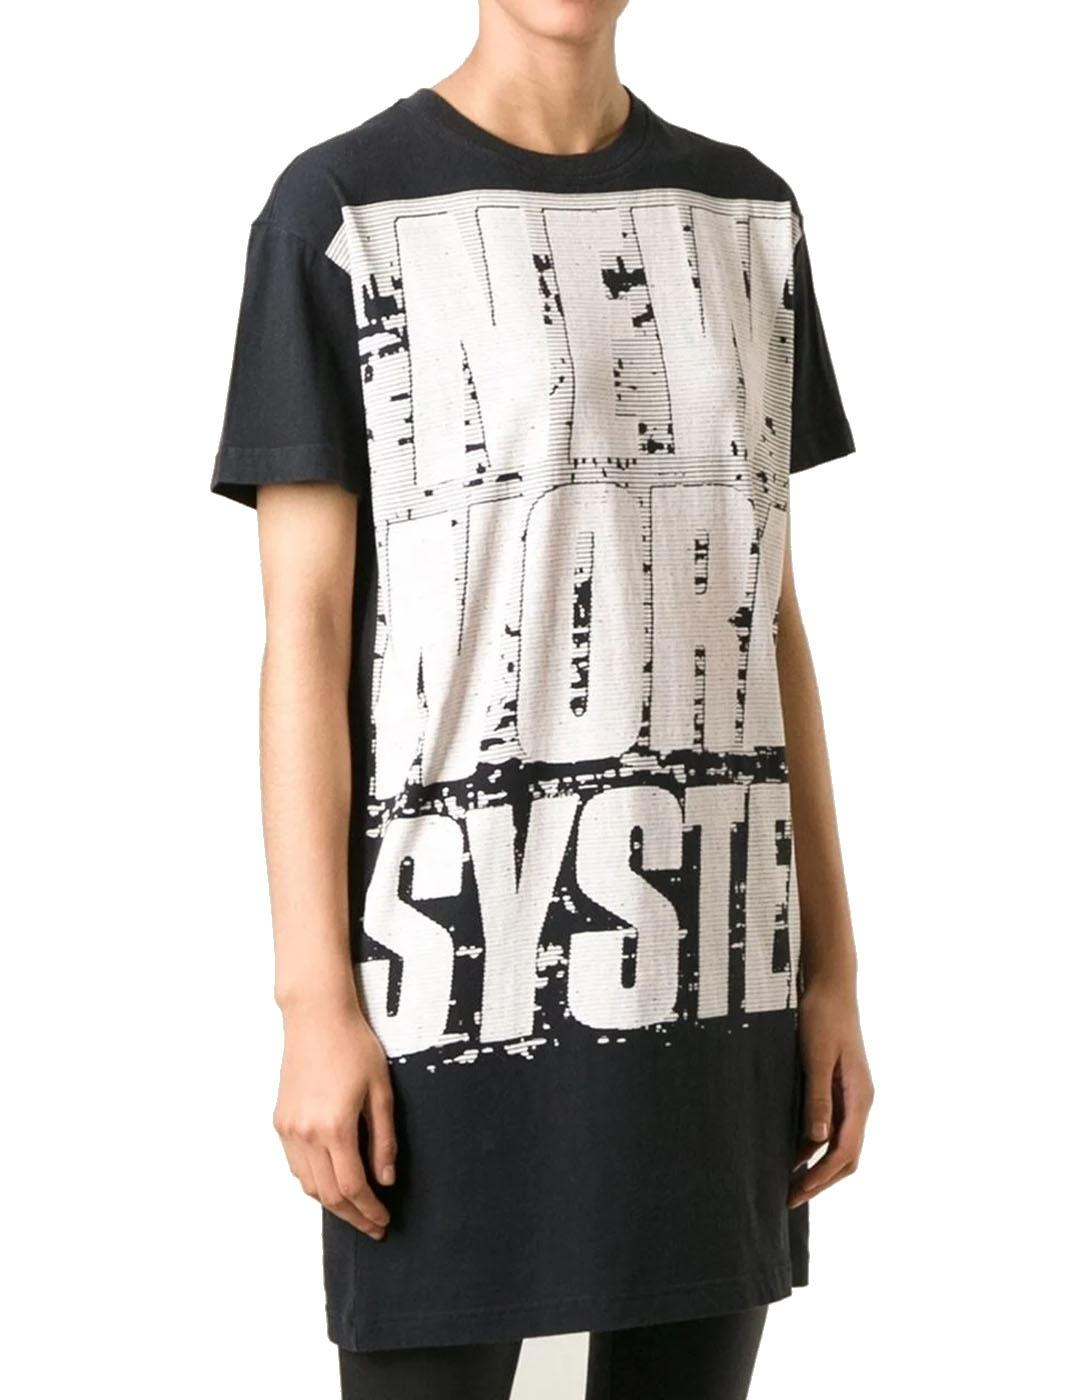 Camiseta Marc by Marc Jacobs negra New World System Dress